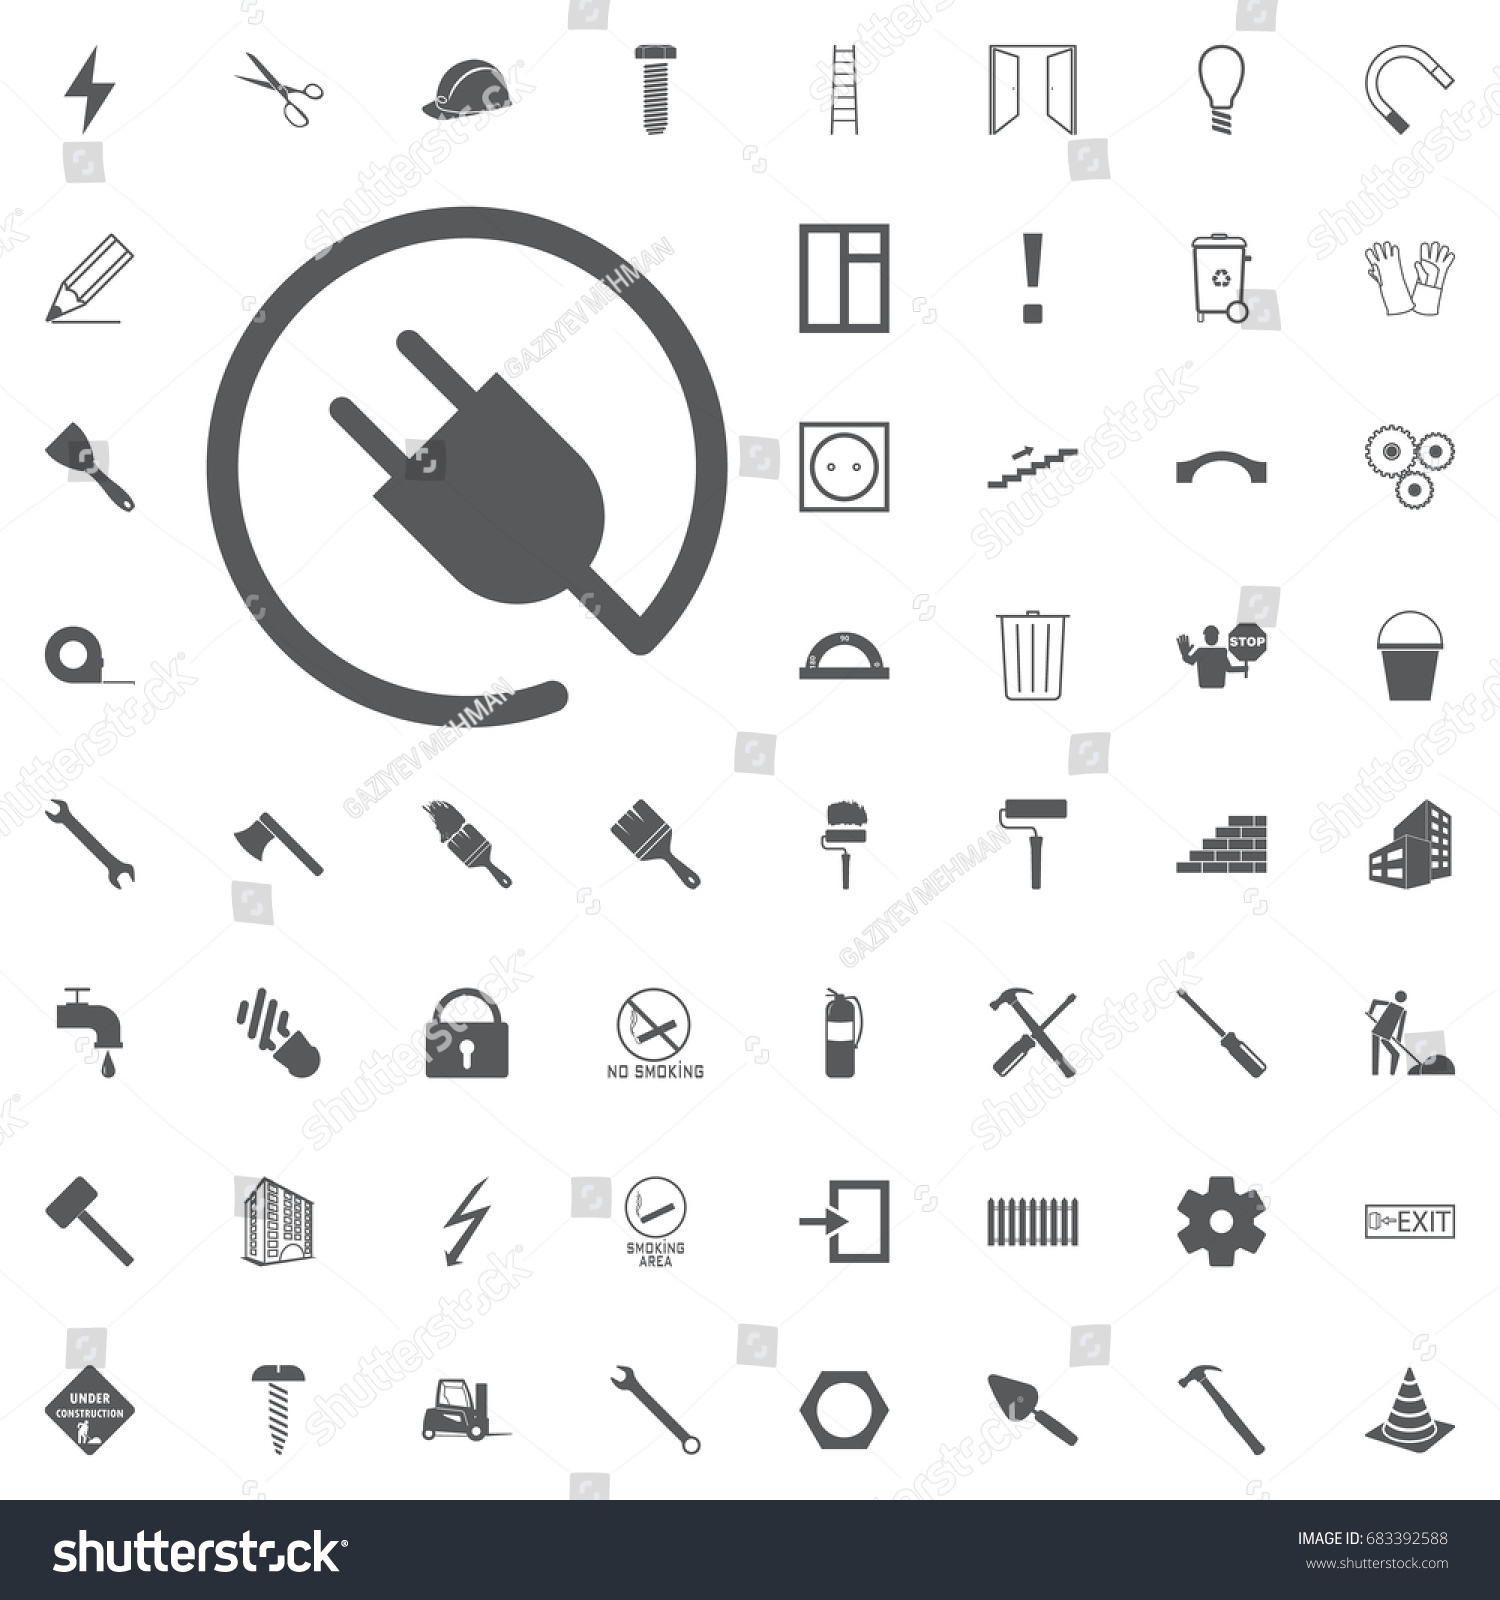 Electric Plug Icon Lamp Bulb Battery Stock Vector (2018) 683392588 ...